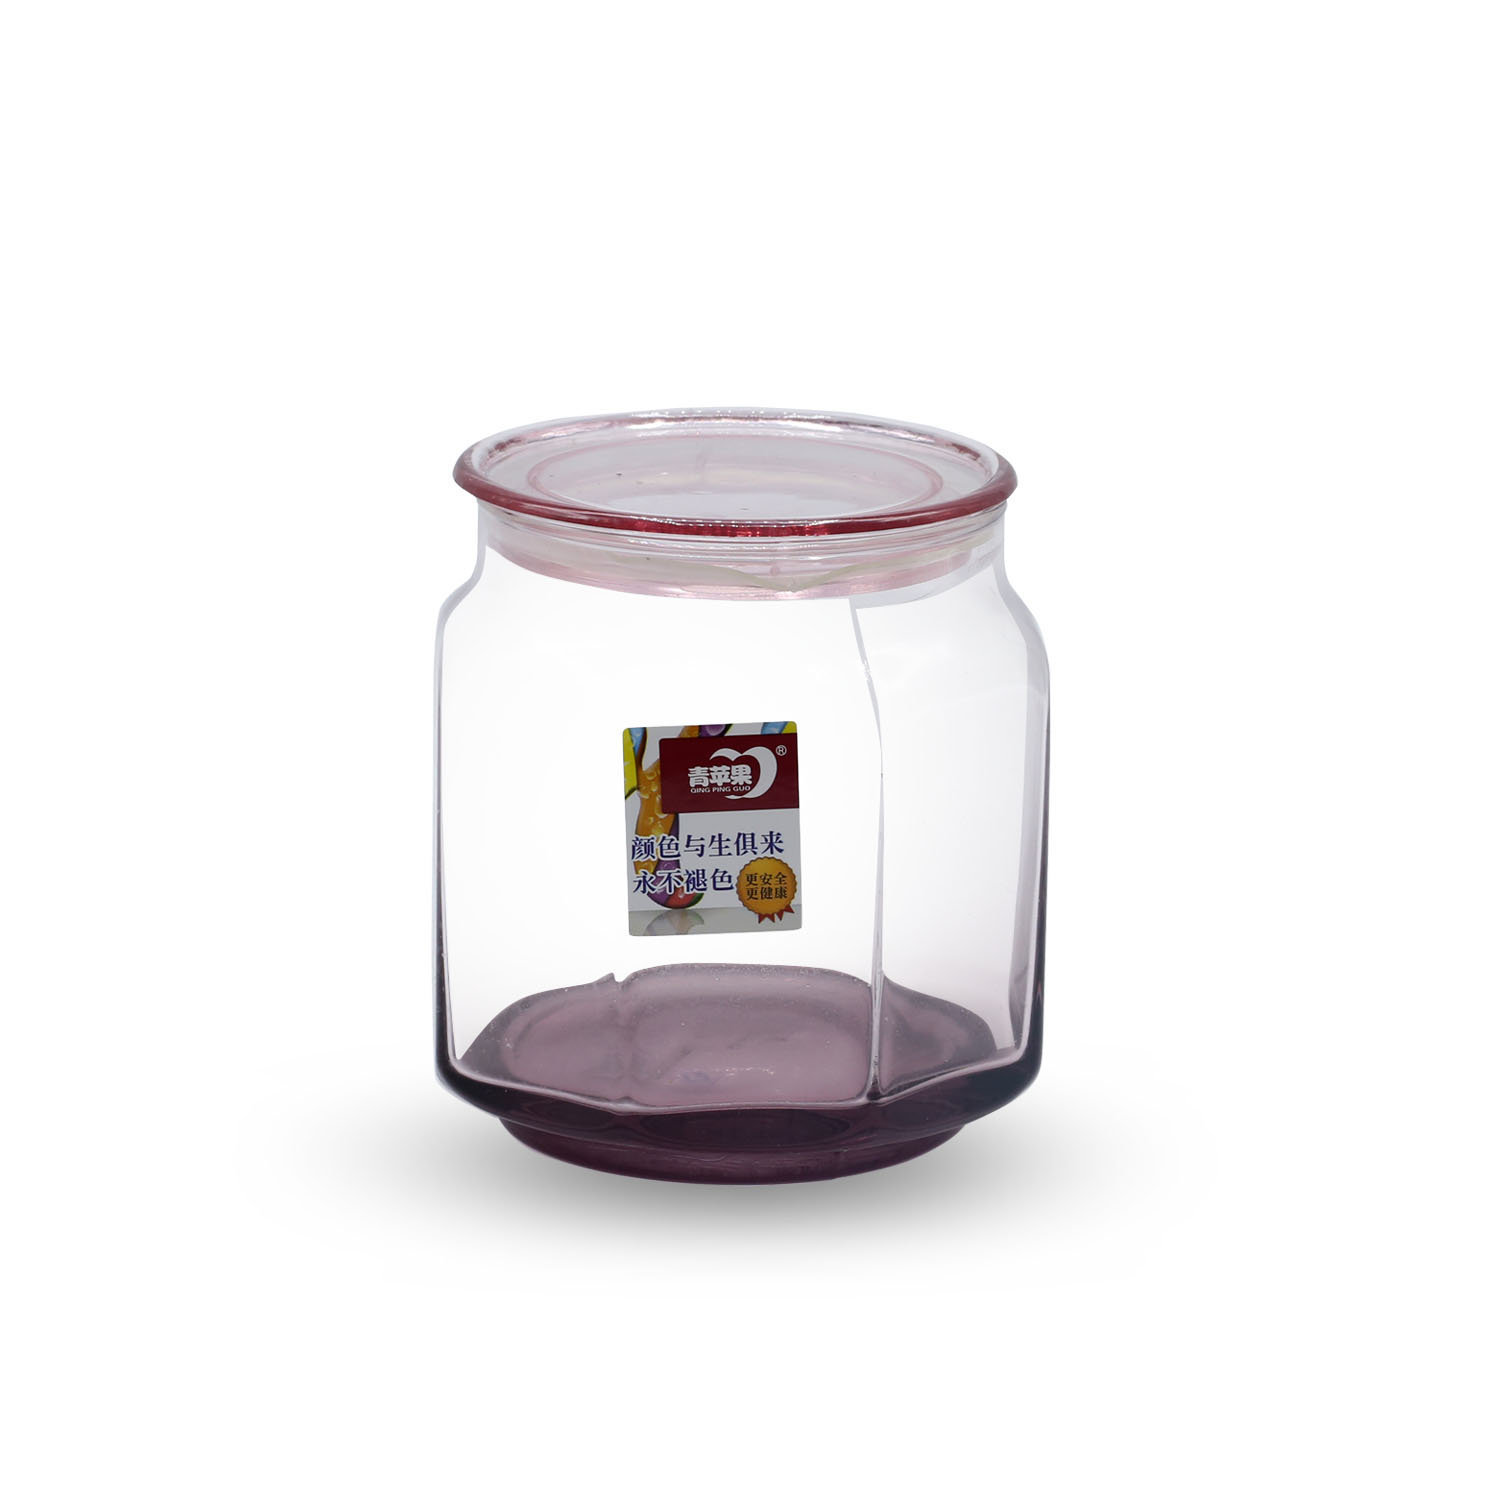 Deli Glass Jar Medium JS3918